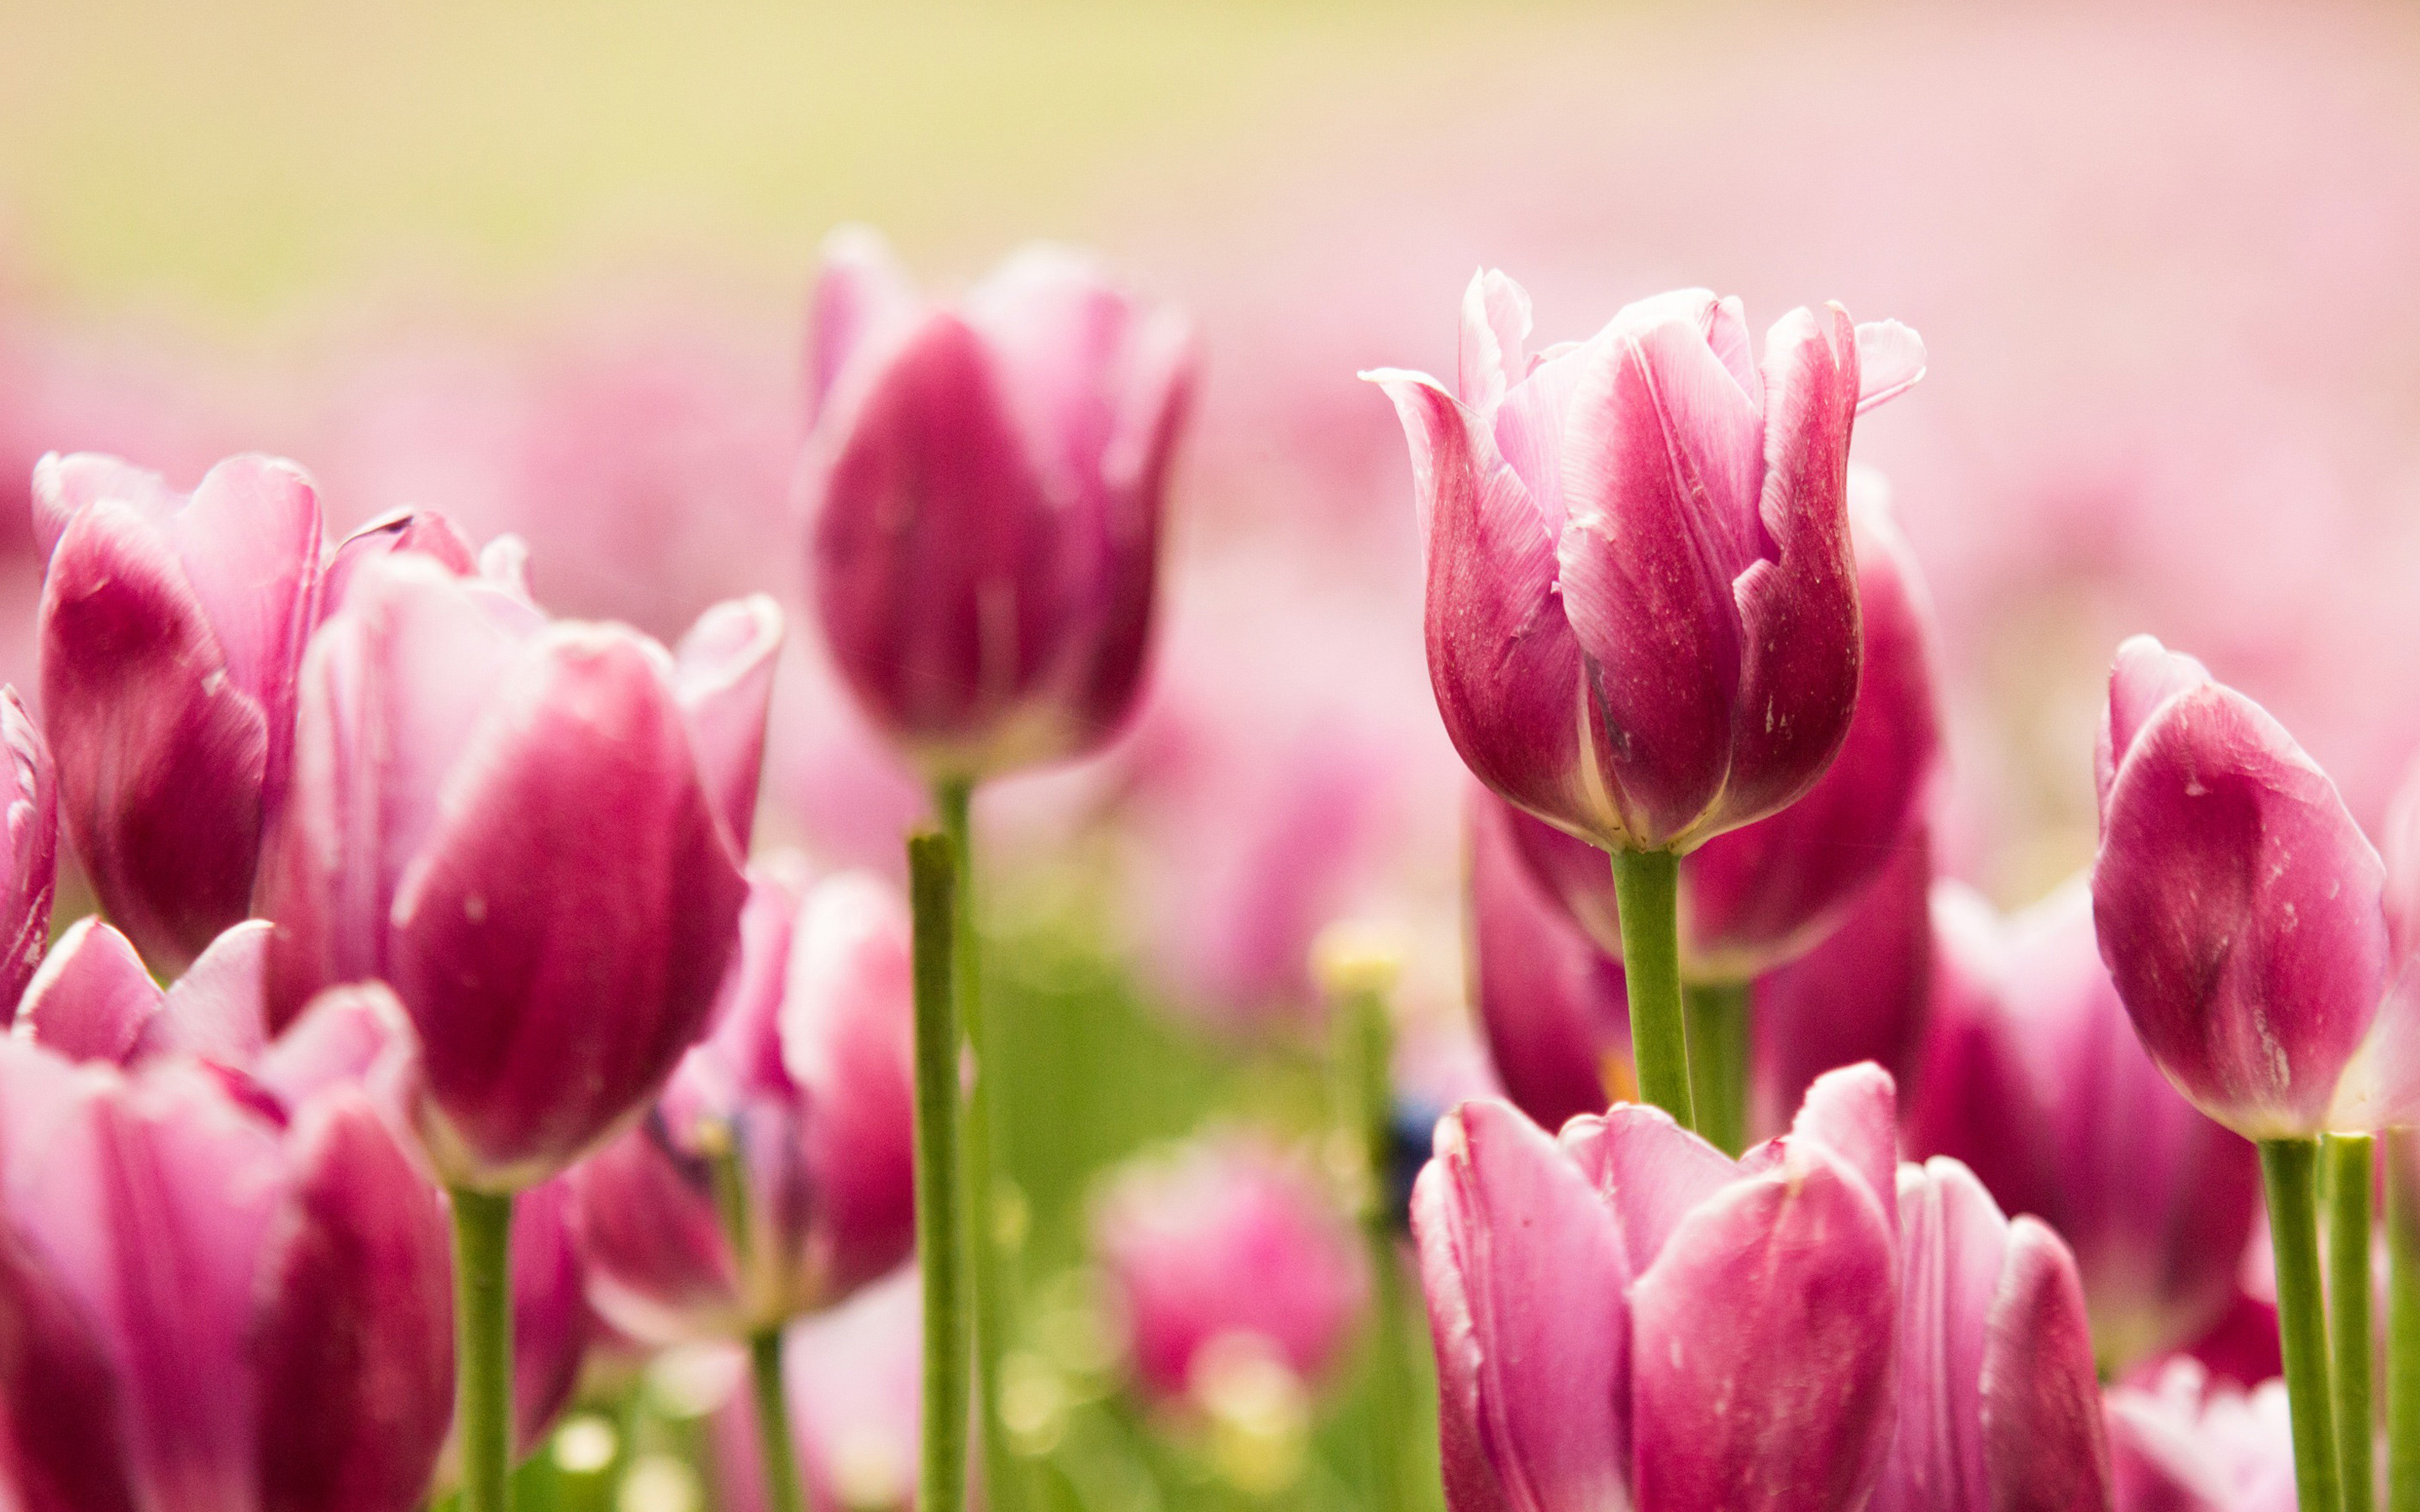 Res: 2880x1800, Tags: Beautiful Pink Tulips